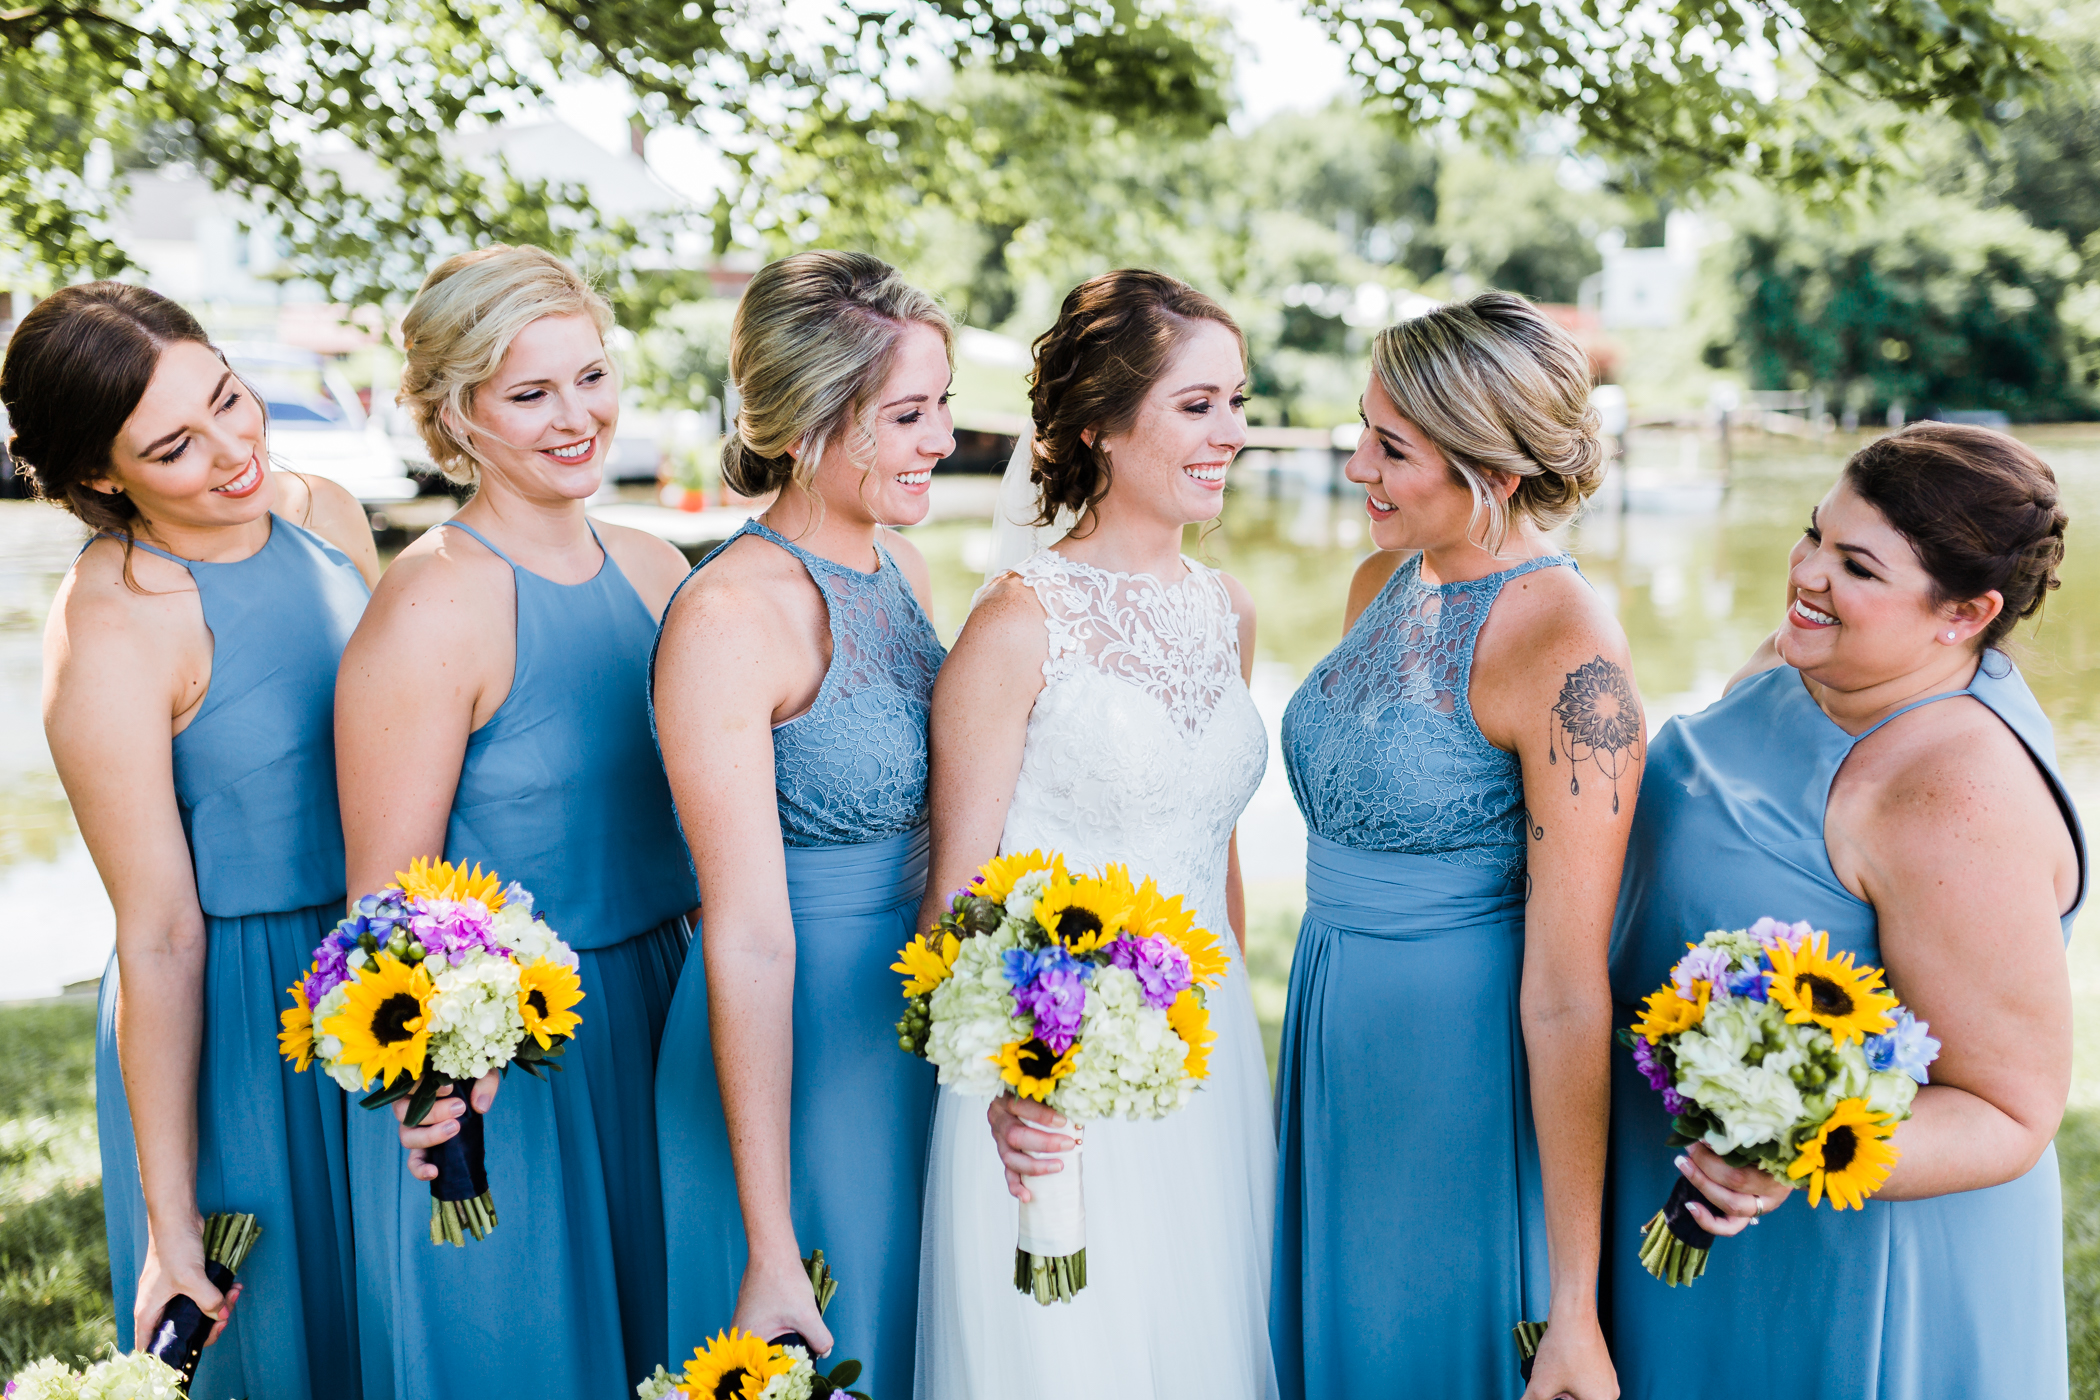 blue bridesmaid dresses and sunflower bouquets - maryland wedding photographer